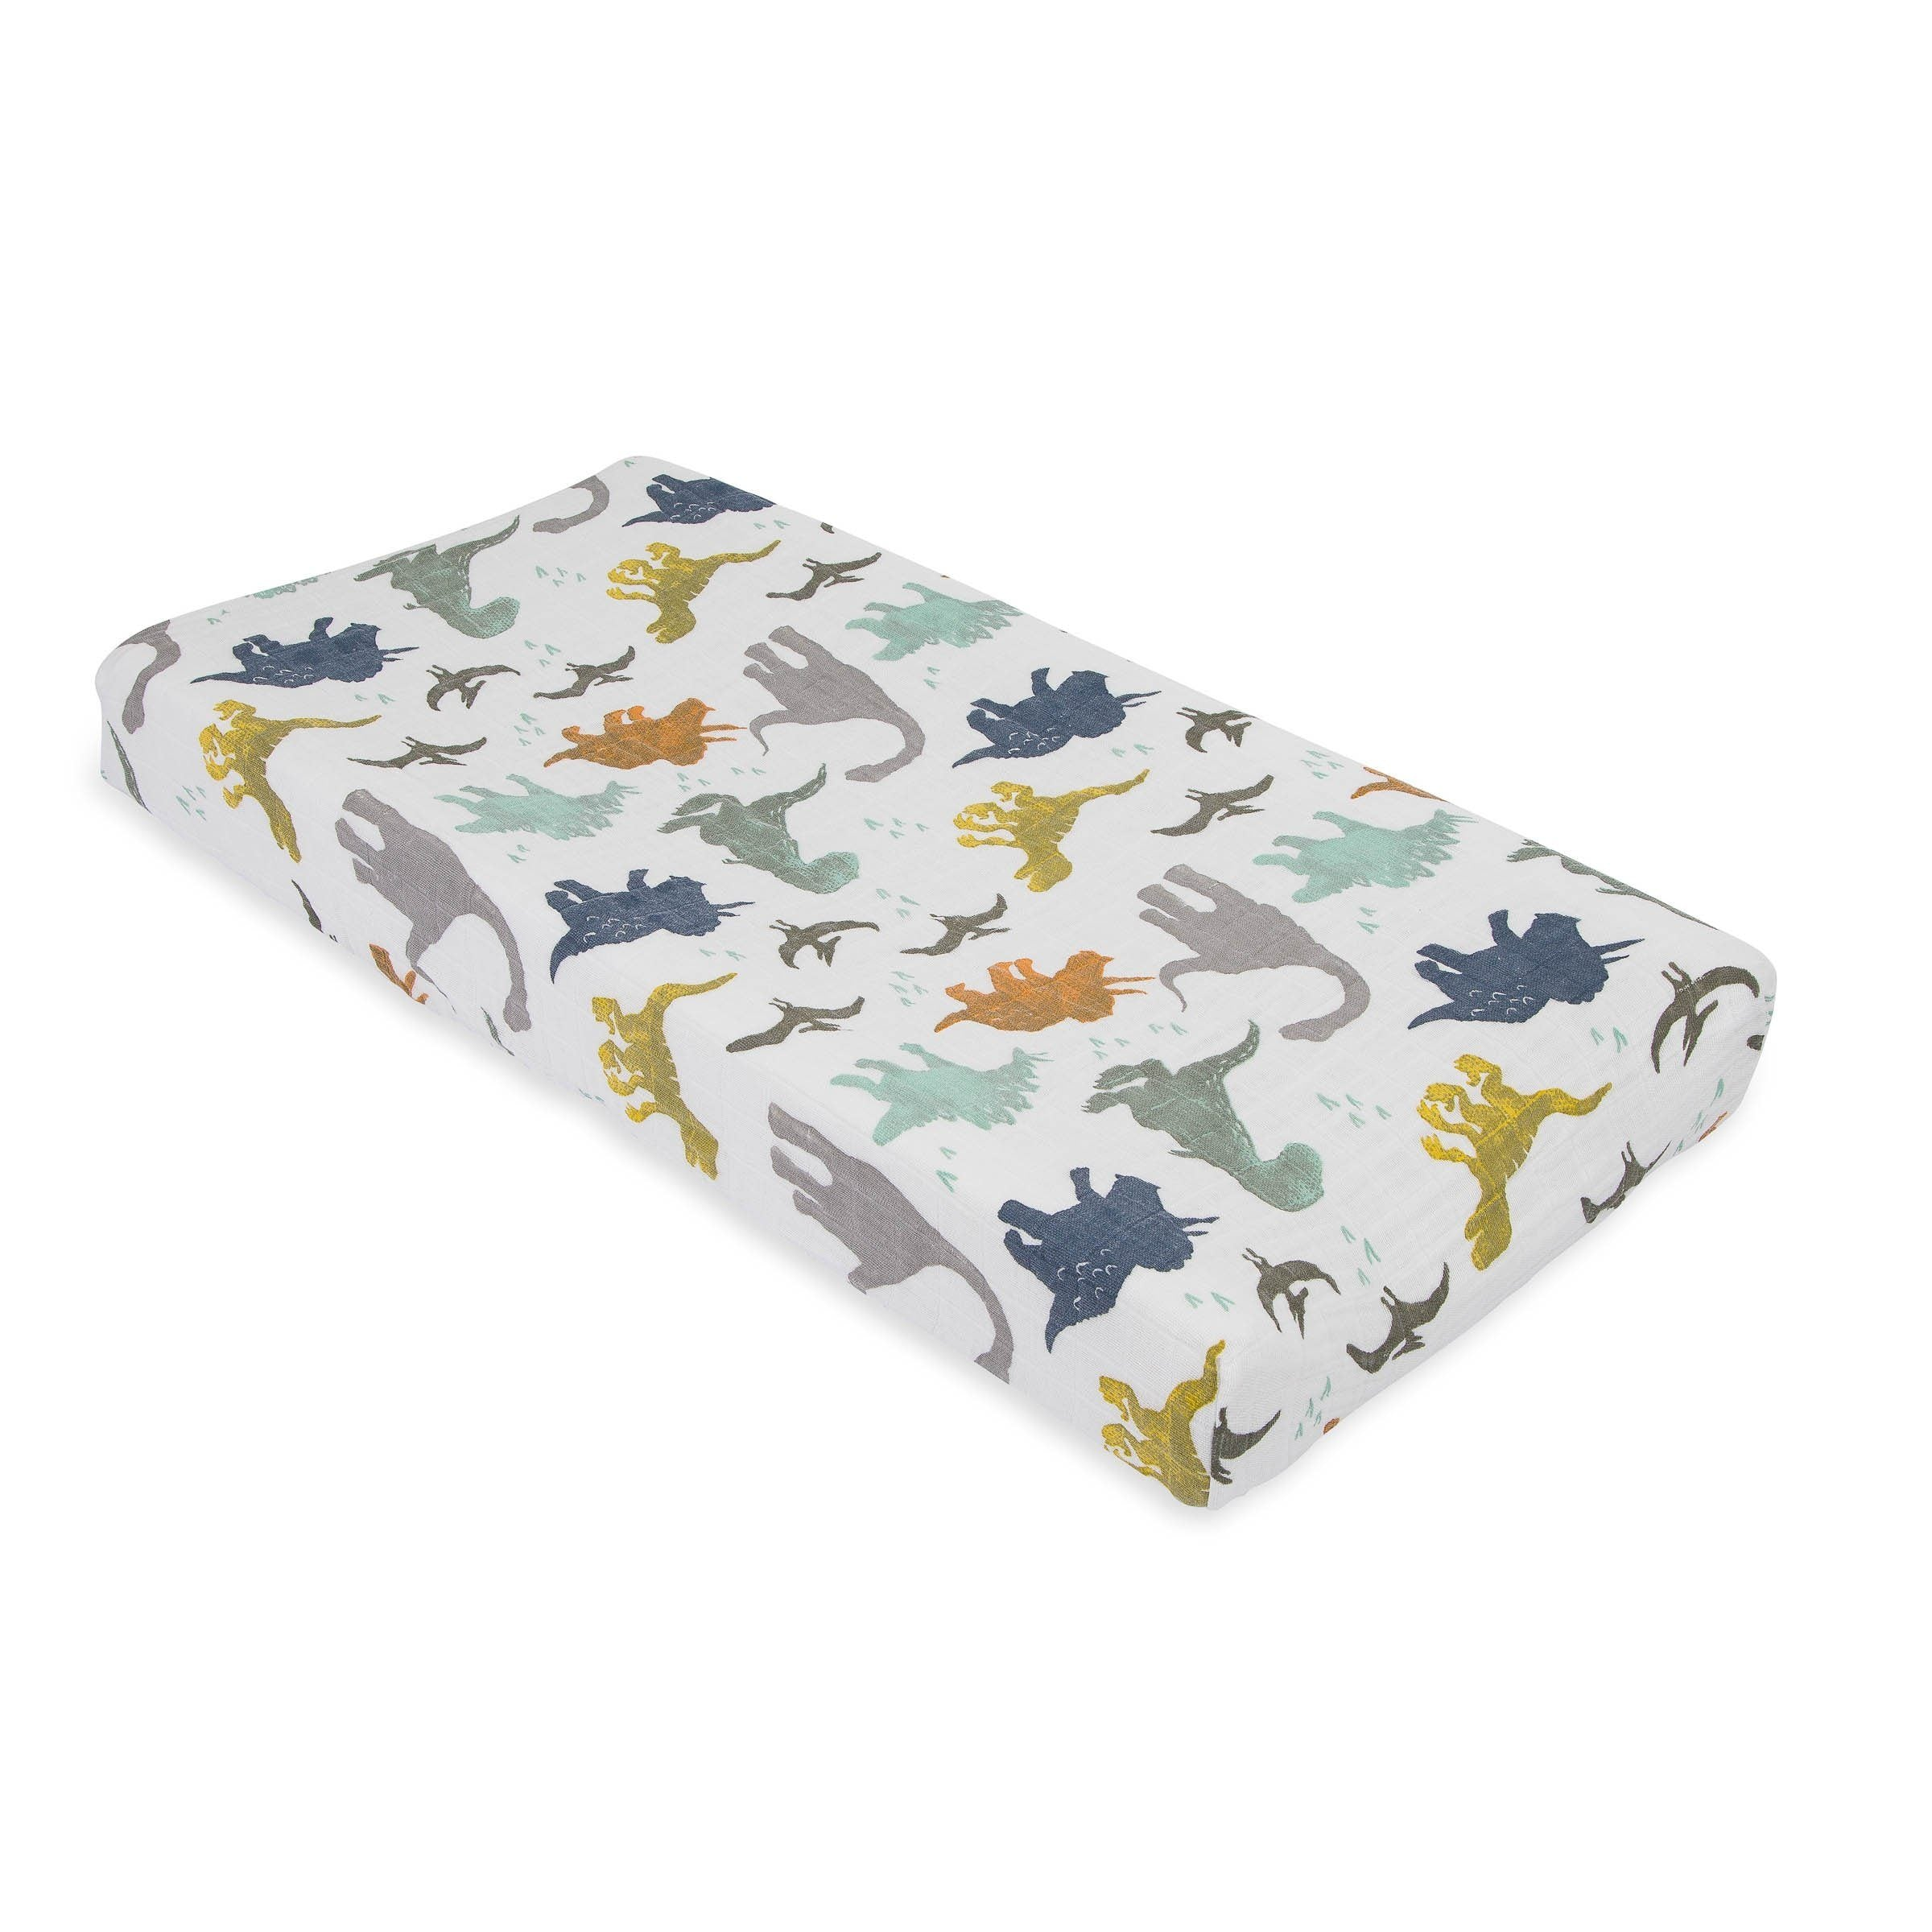 Dino Friends Cotton Muslin Changing Pad Cover - Project Nursery